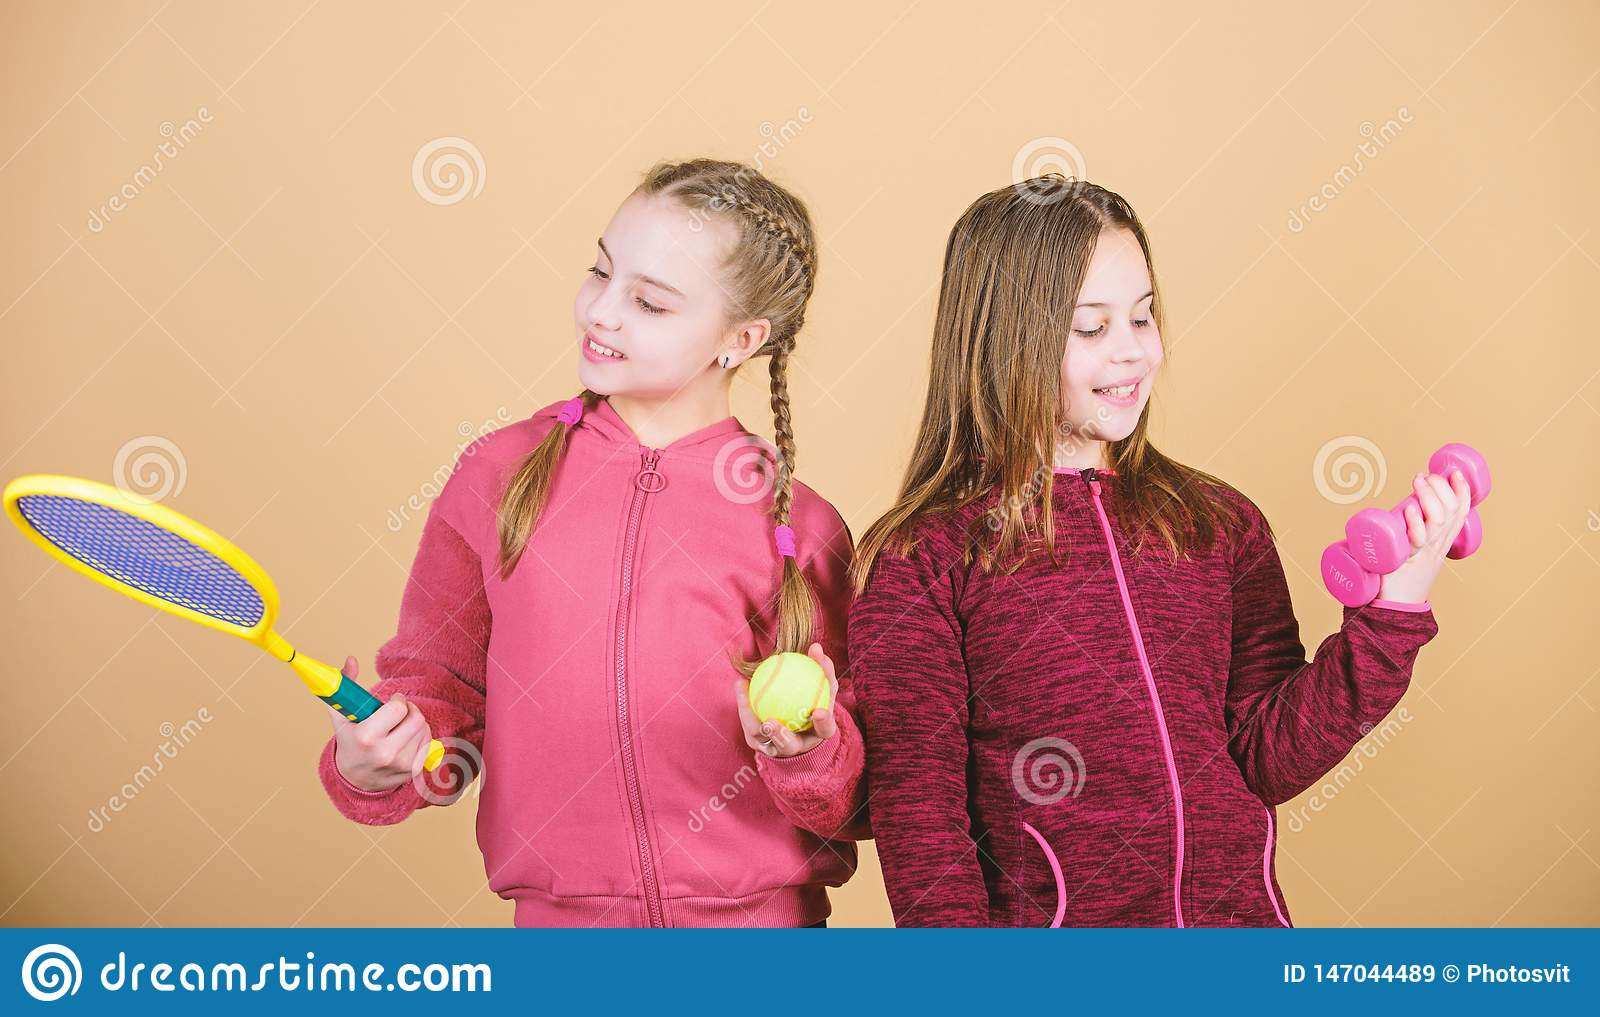 Friends ready for training. Ways to help kids find sport they enjoy. Girls cute kids with sport equipment dumbbells and